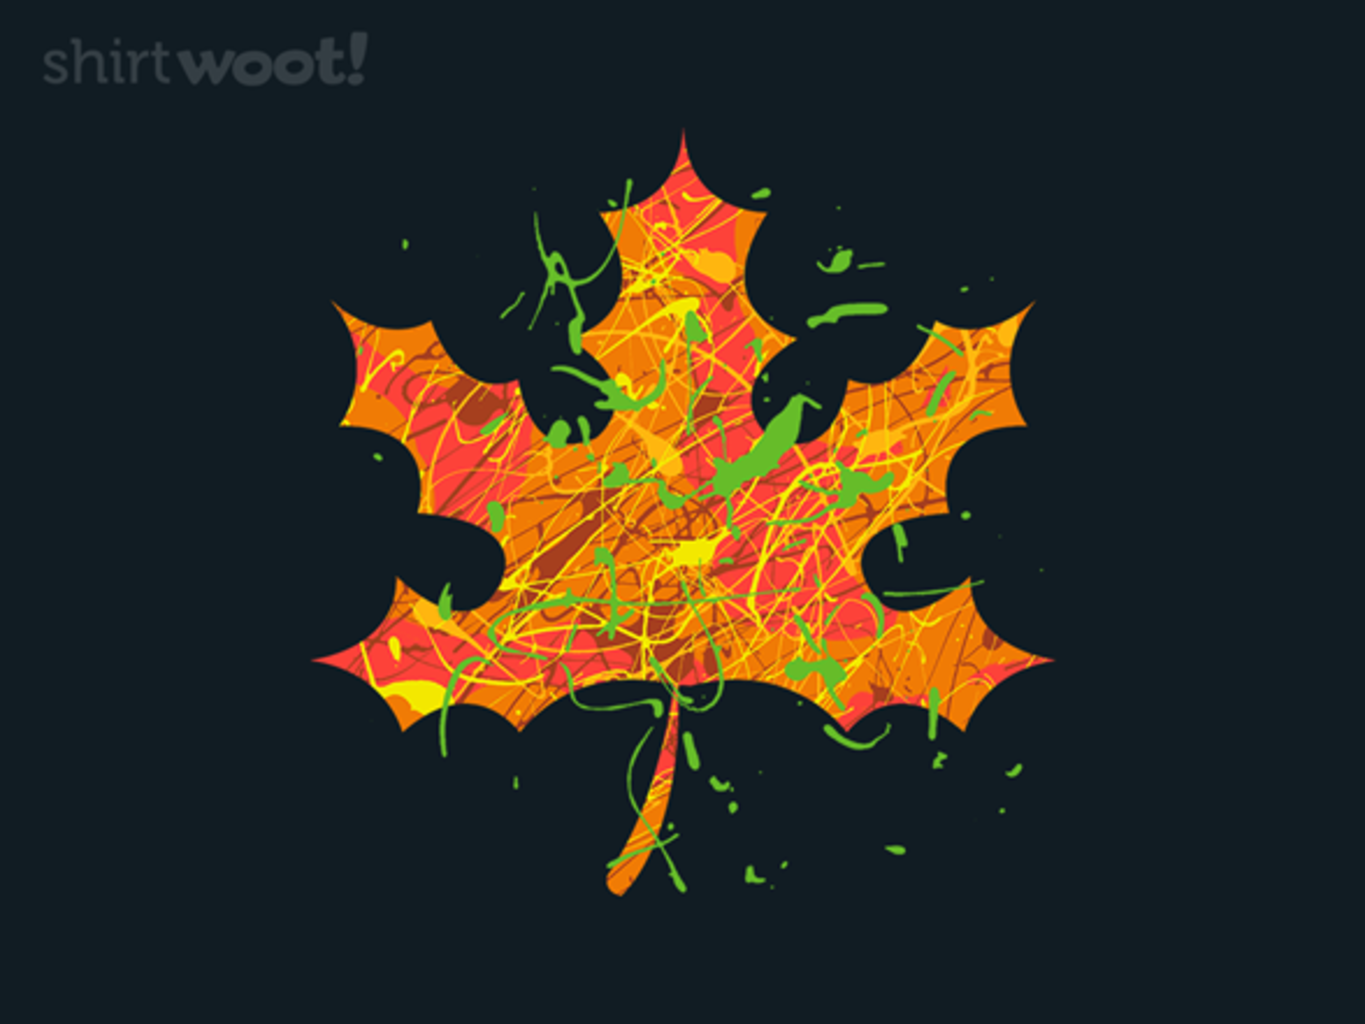 Woot!: Falling Colors Crewneck Sweatshirt - $16.00 + $5 standard shipping